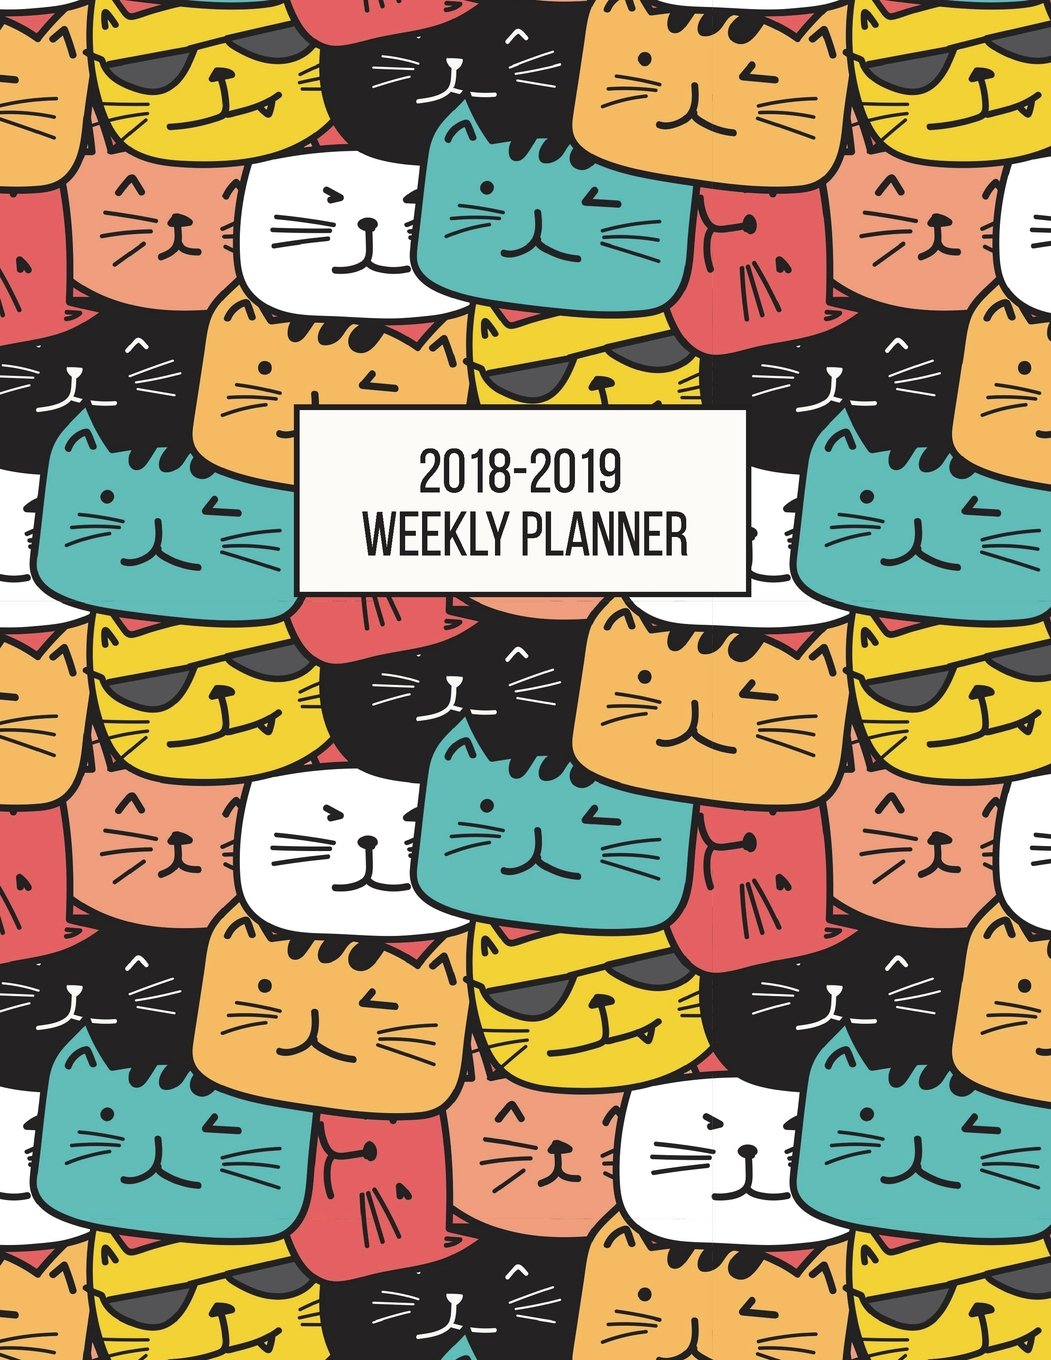 2018-2019 Weekly Planner: Illustrated Cats Aug 2018 - July 2019